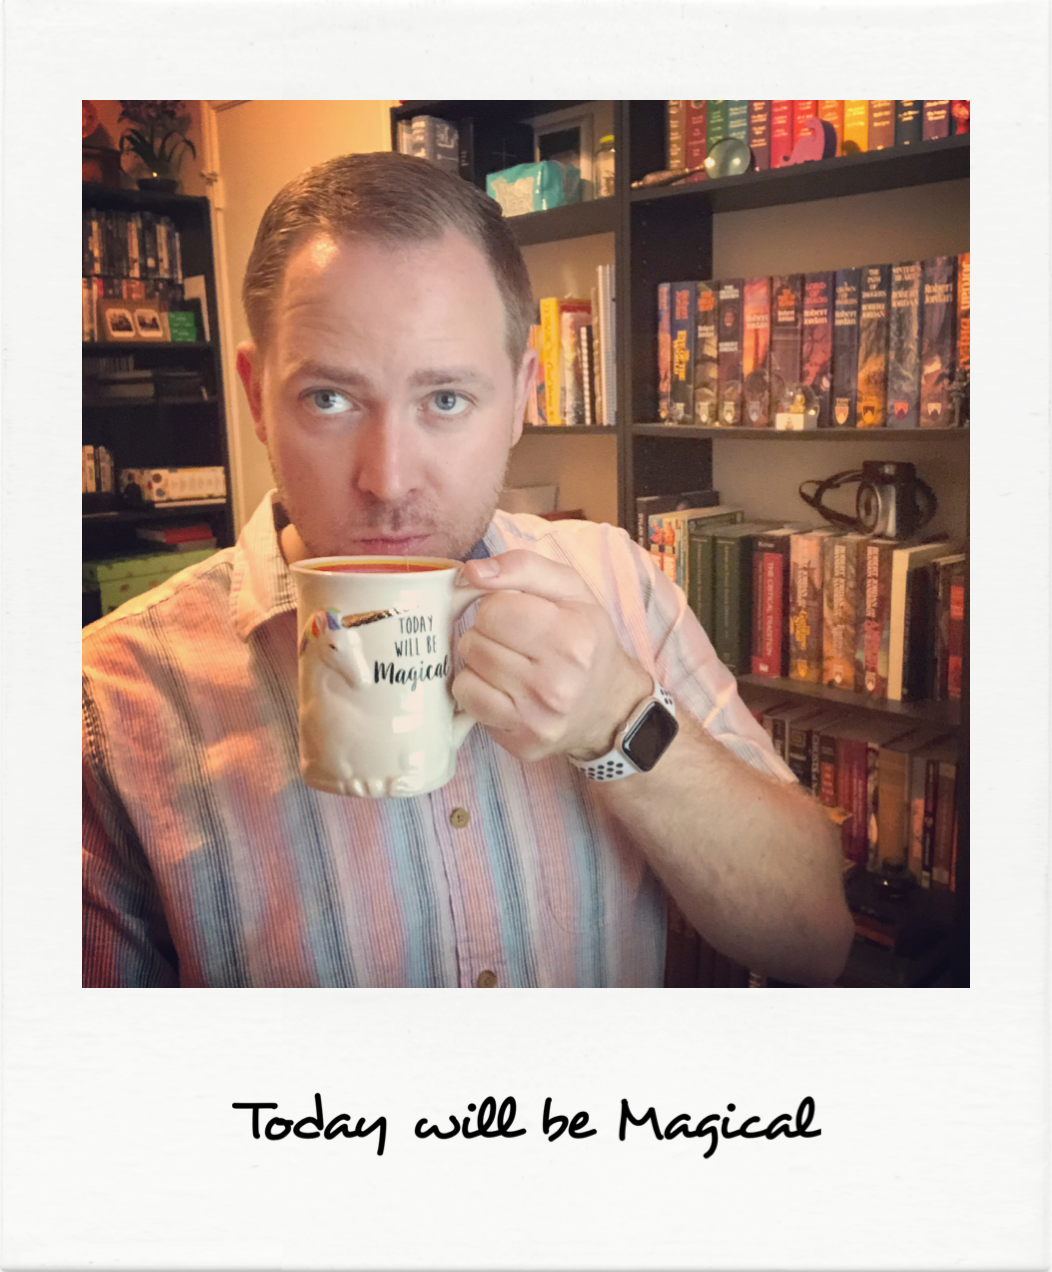 Today will be Magical